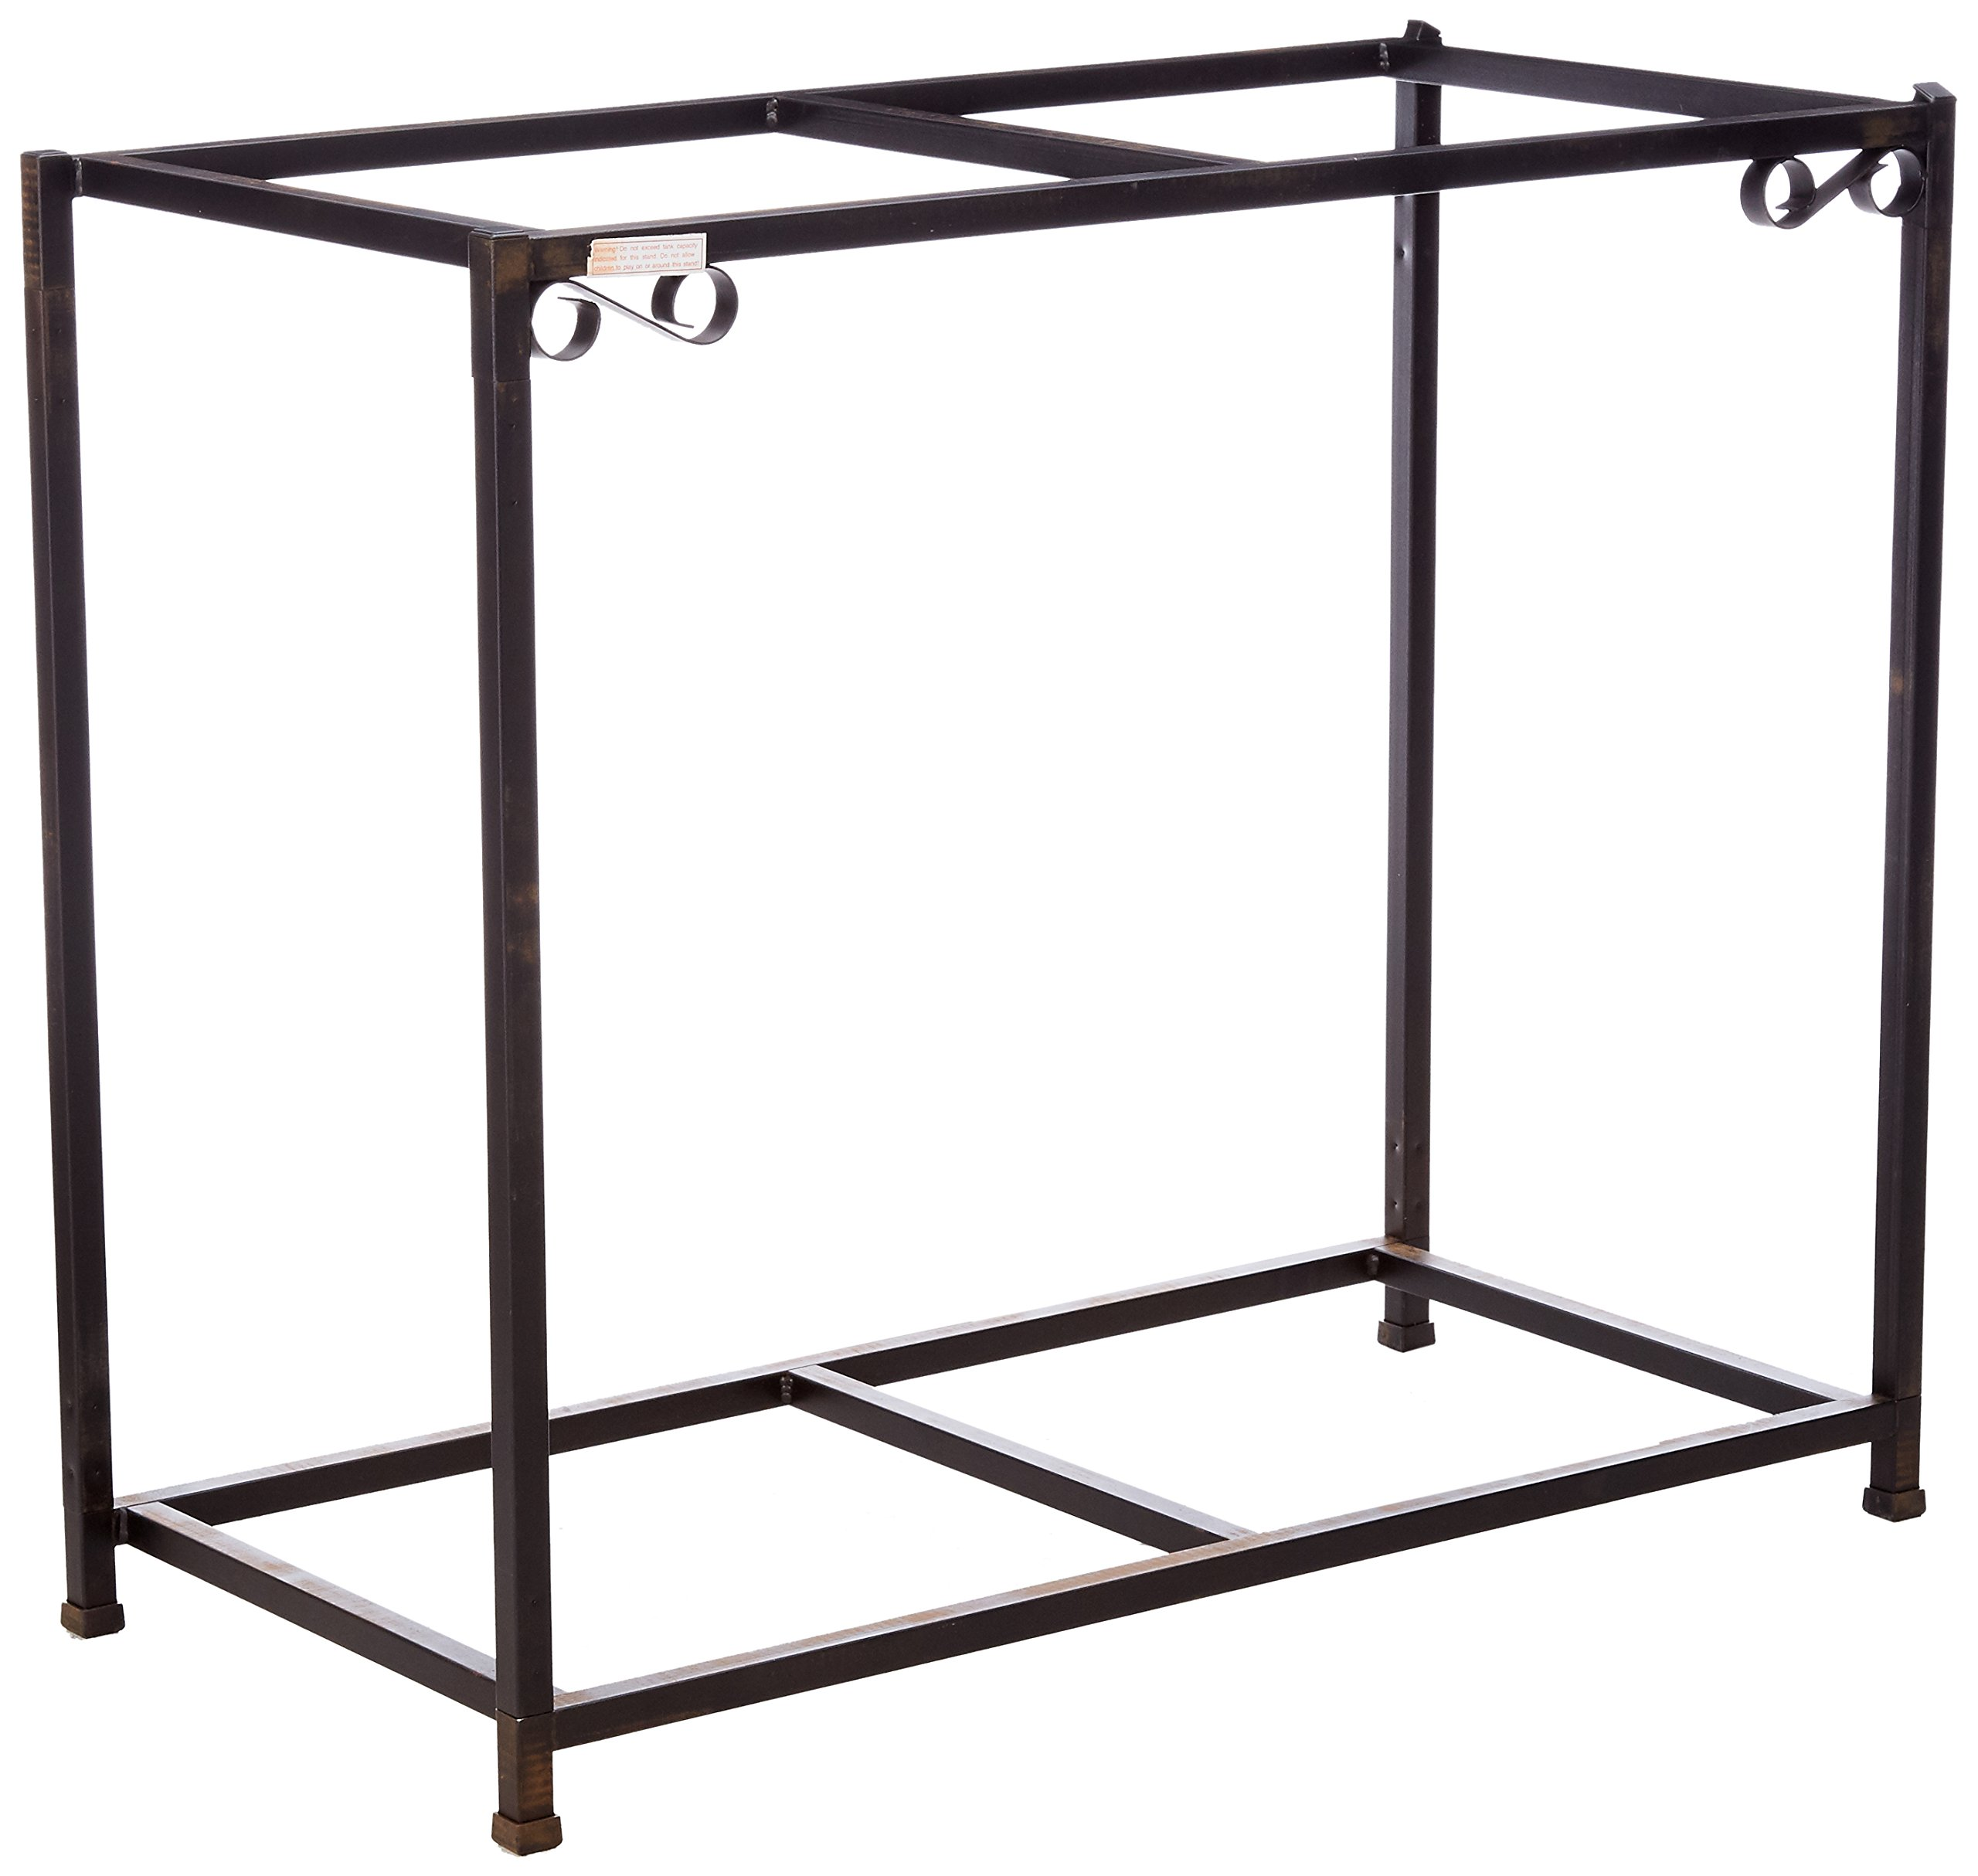 Caitec Bird Toys TitanEzeDouble Aquarium Stand, Two Stands in One, Upper & Lower Levels, Birds, Fish, Small Animals, 30 Gallons, 38-1/2''L x 29''H x 13''W by Caitec Bird Toys